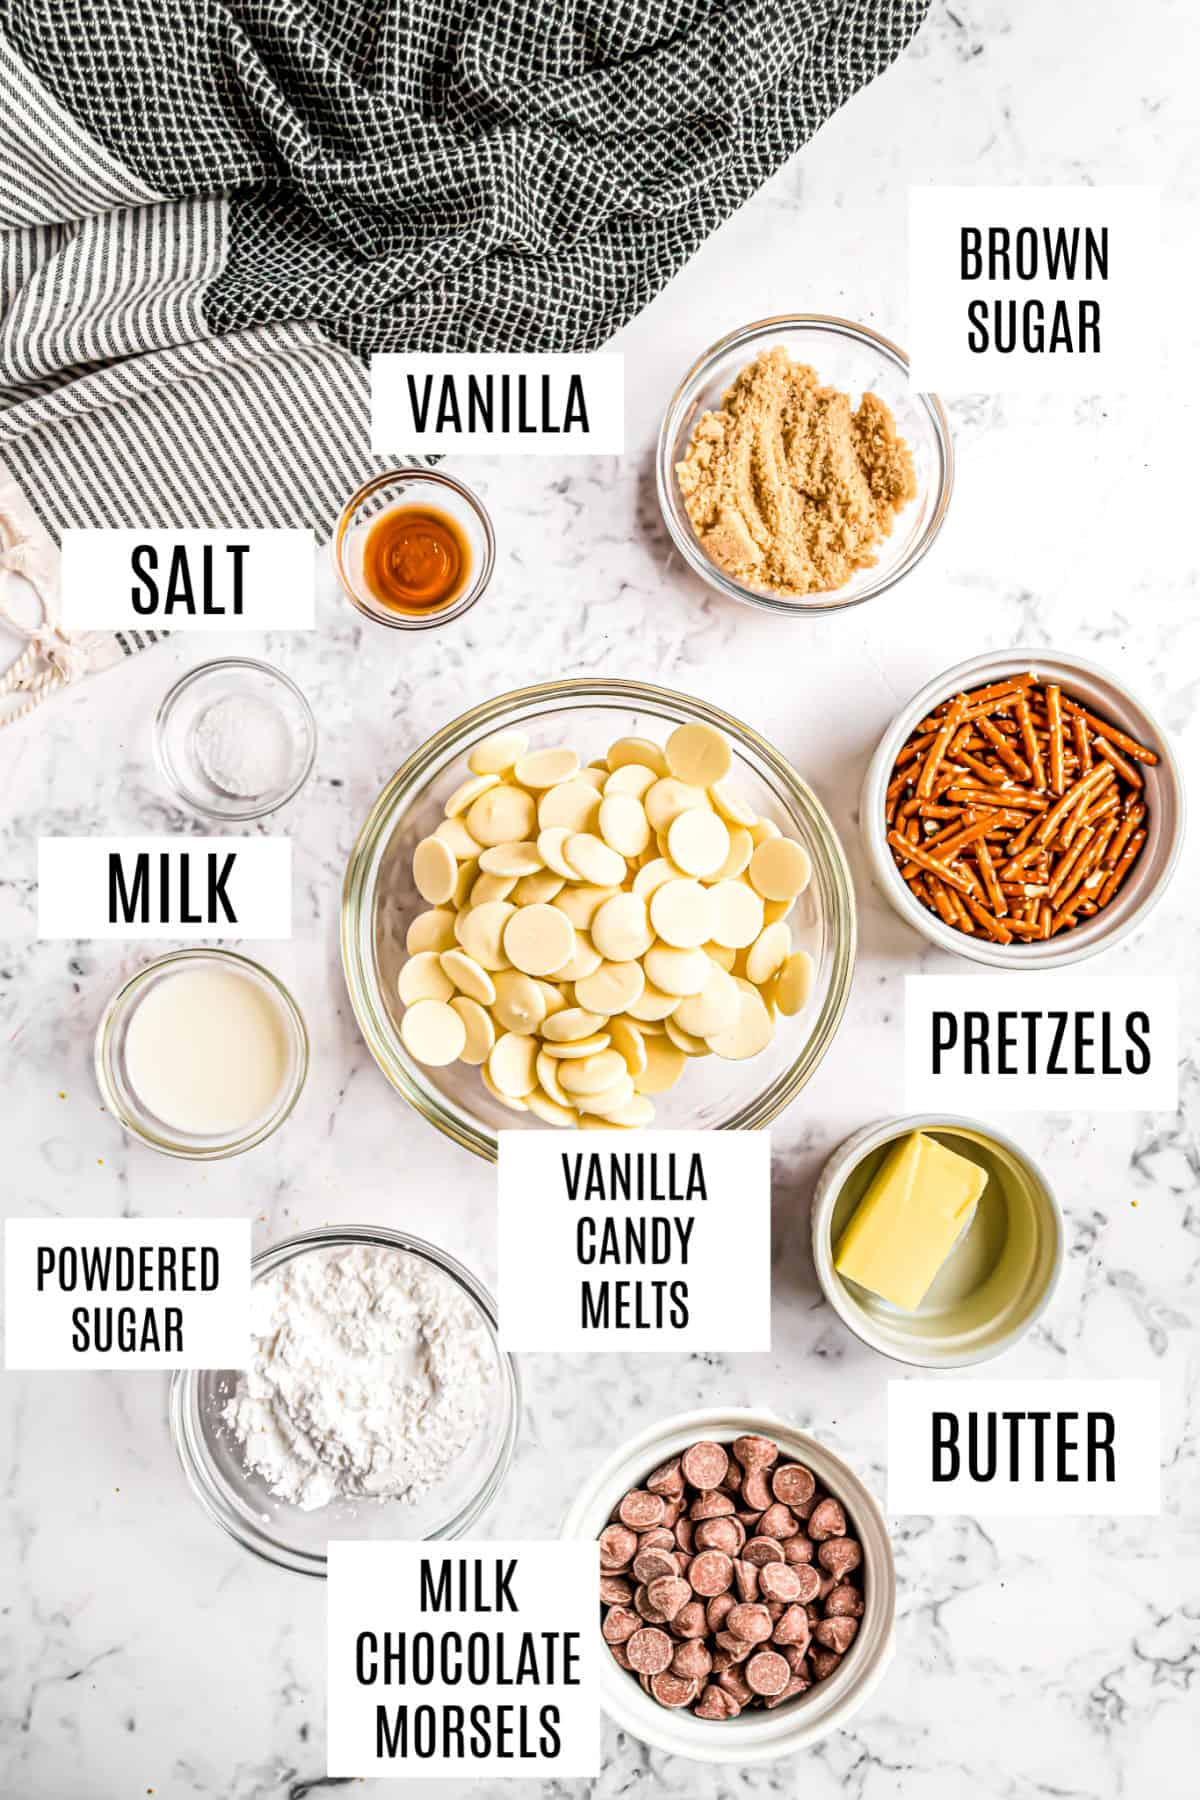 Ingredients needed to make salted caramel bark candy.